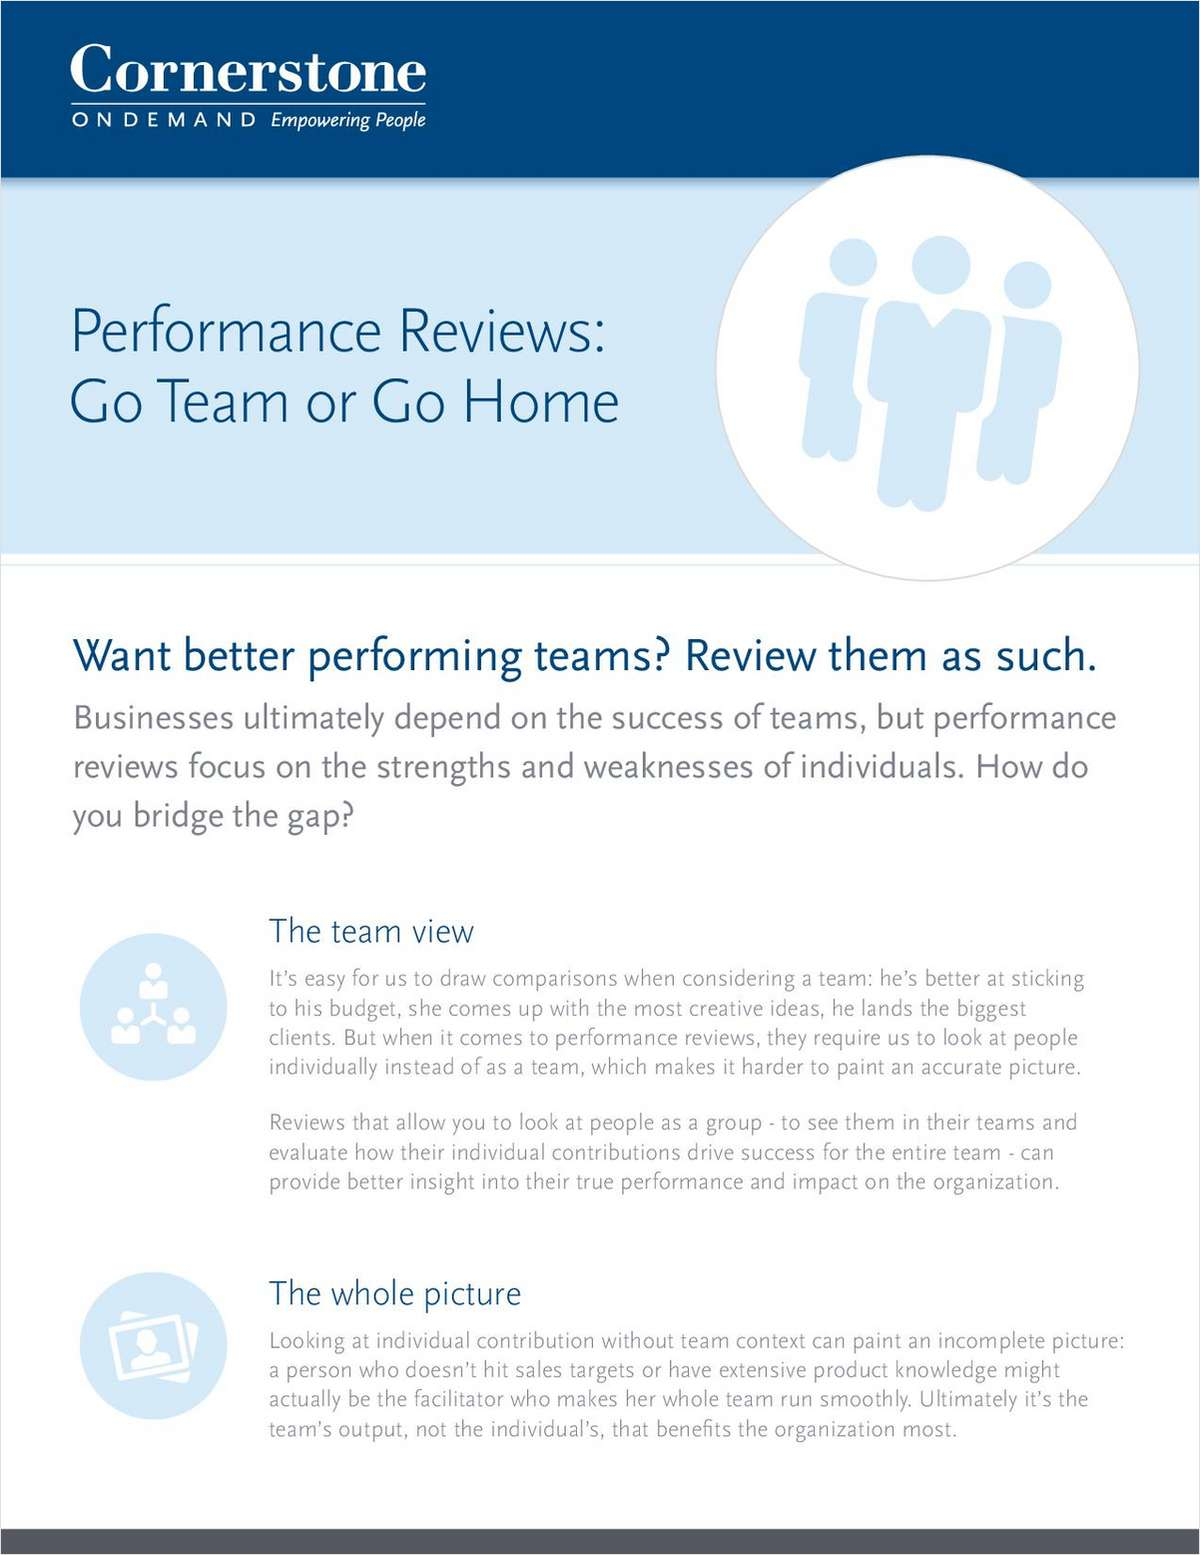 Performance Reviews: Go Team or Go Home